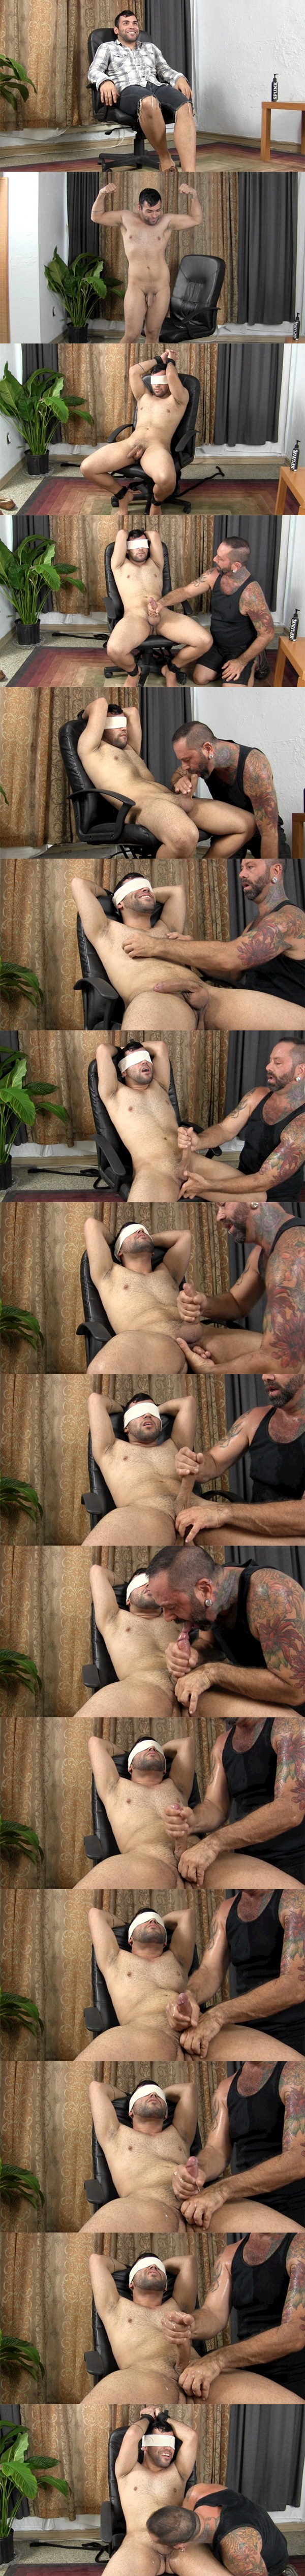 manly rugged tony gets fingerd and stroked at Straightfraternity 02